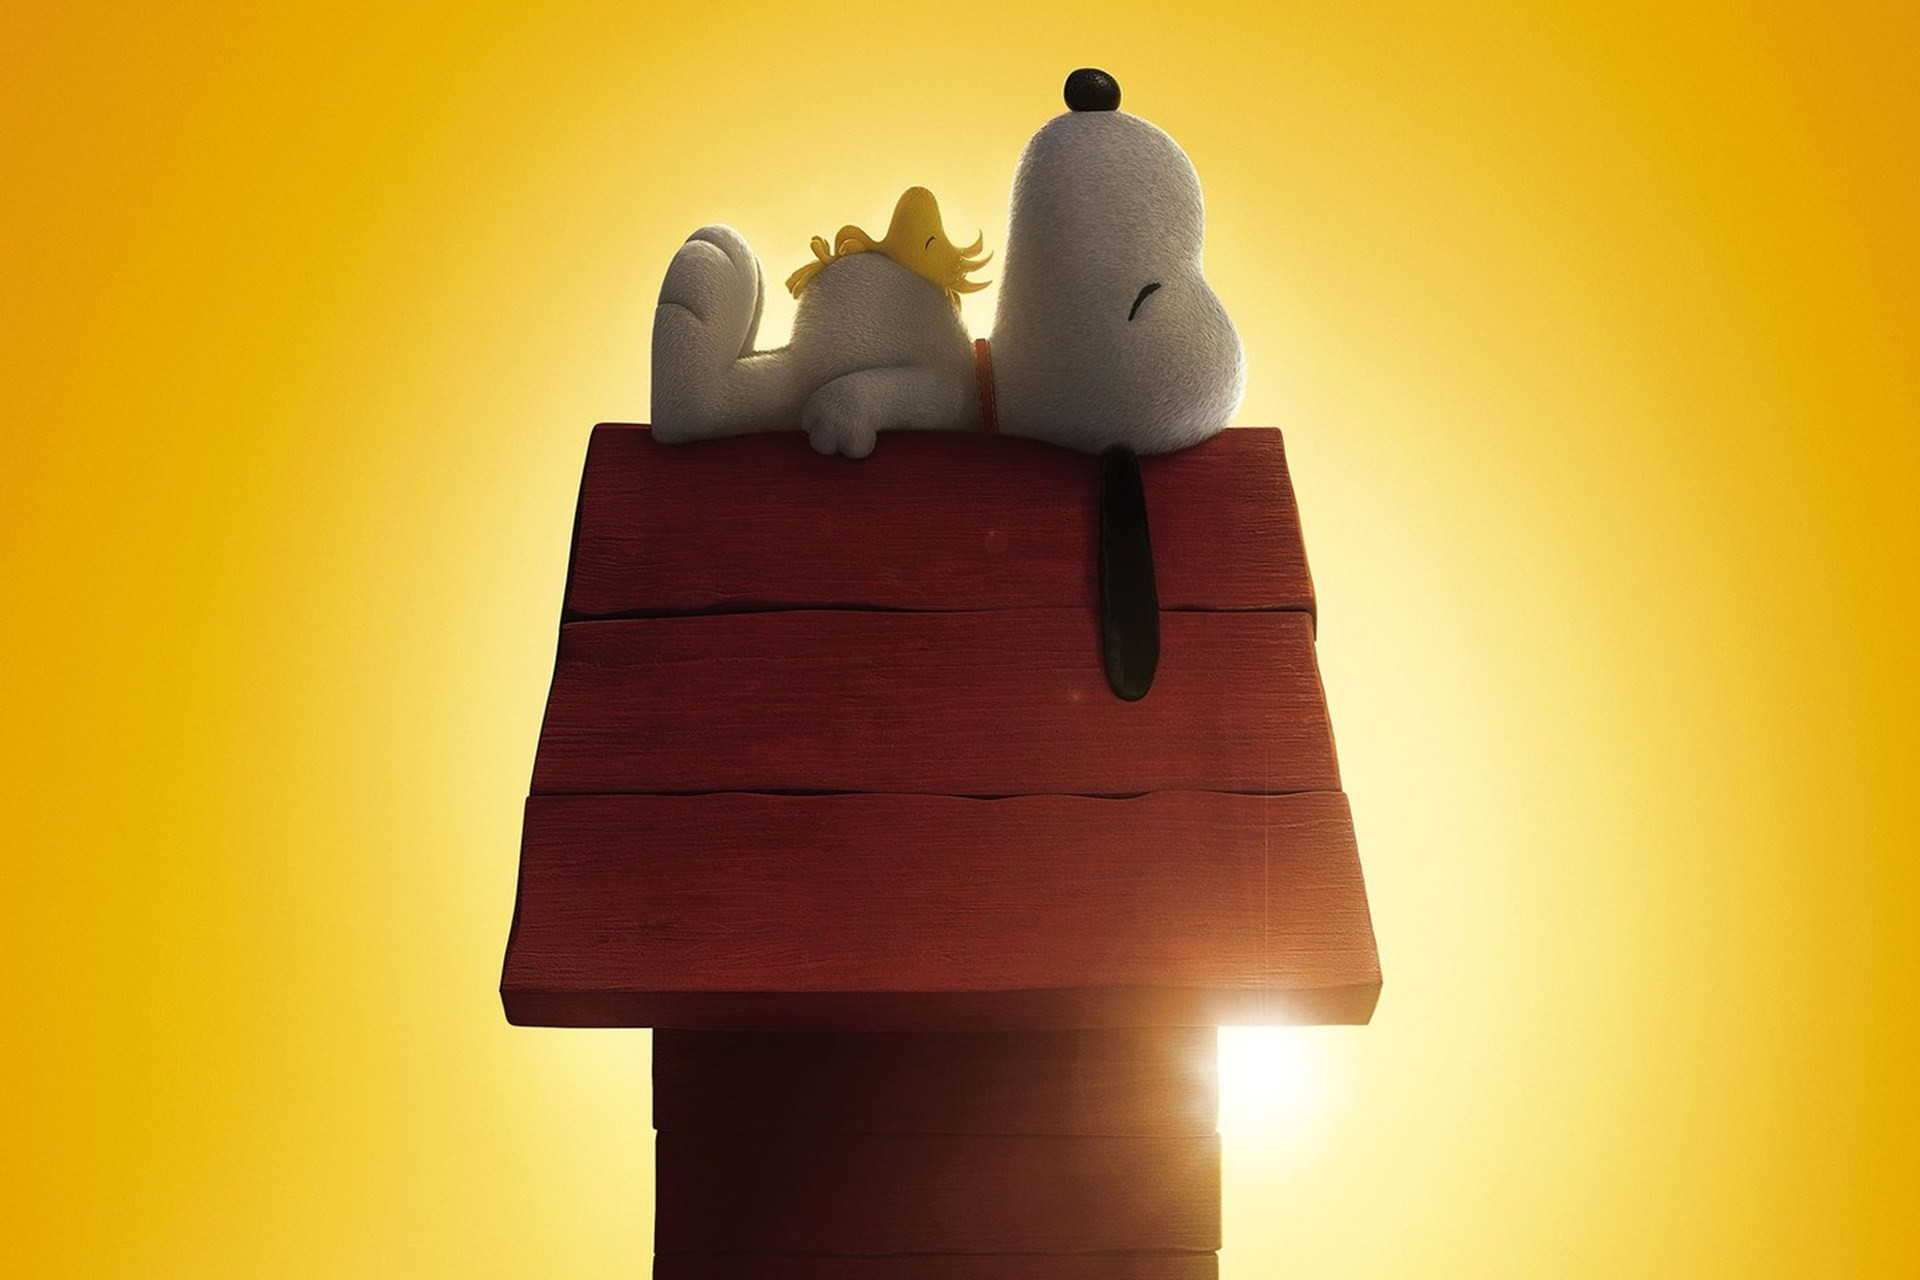 Snoopy And Charlie Brown The Peanuts Stills Hd Wallpaper